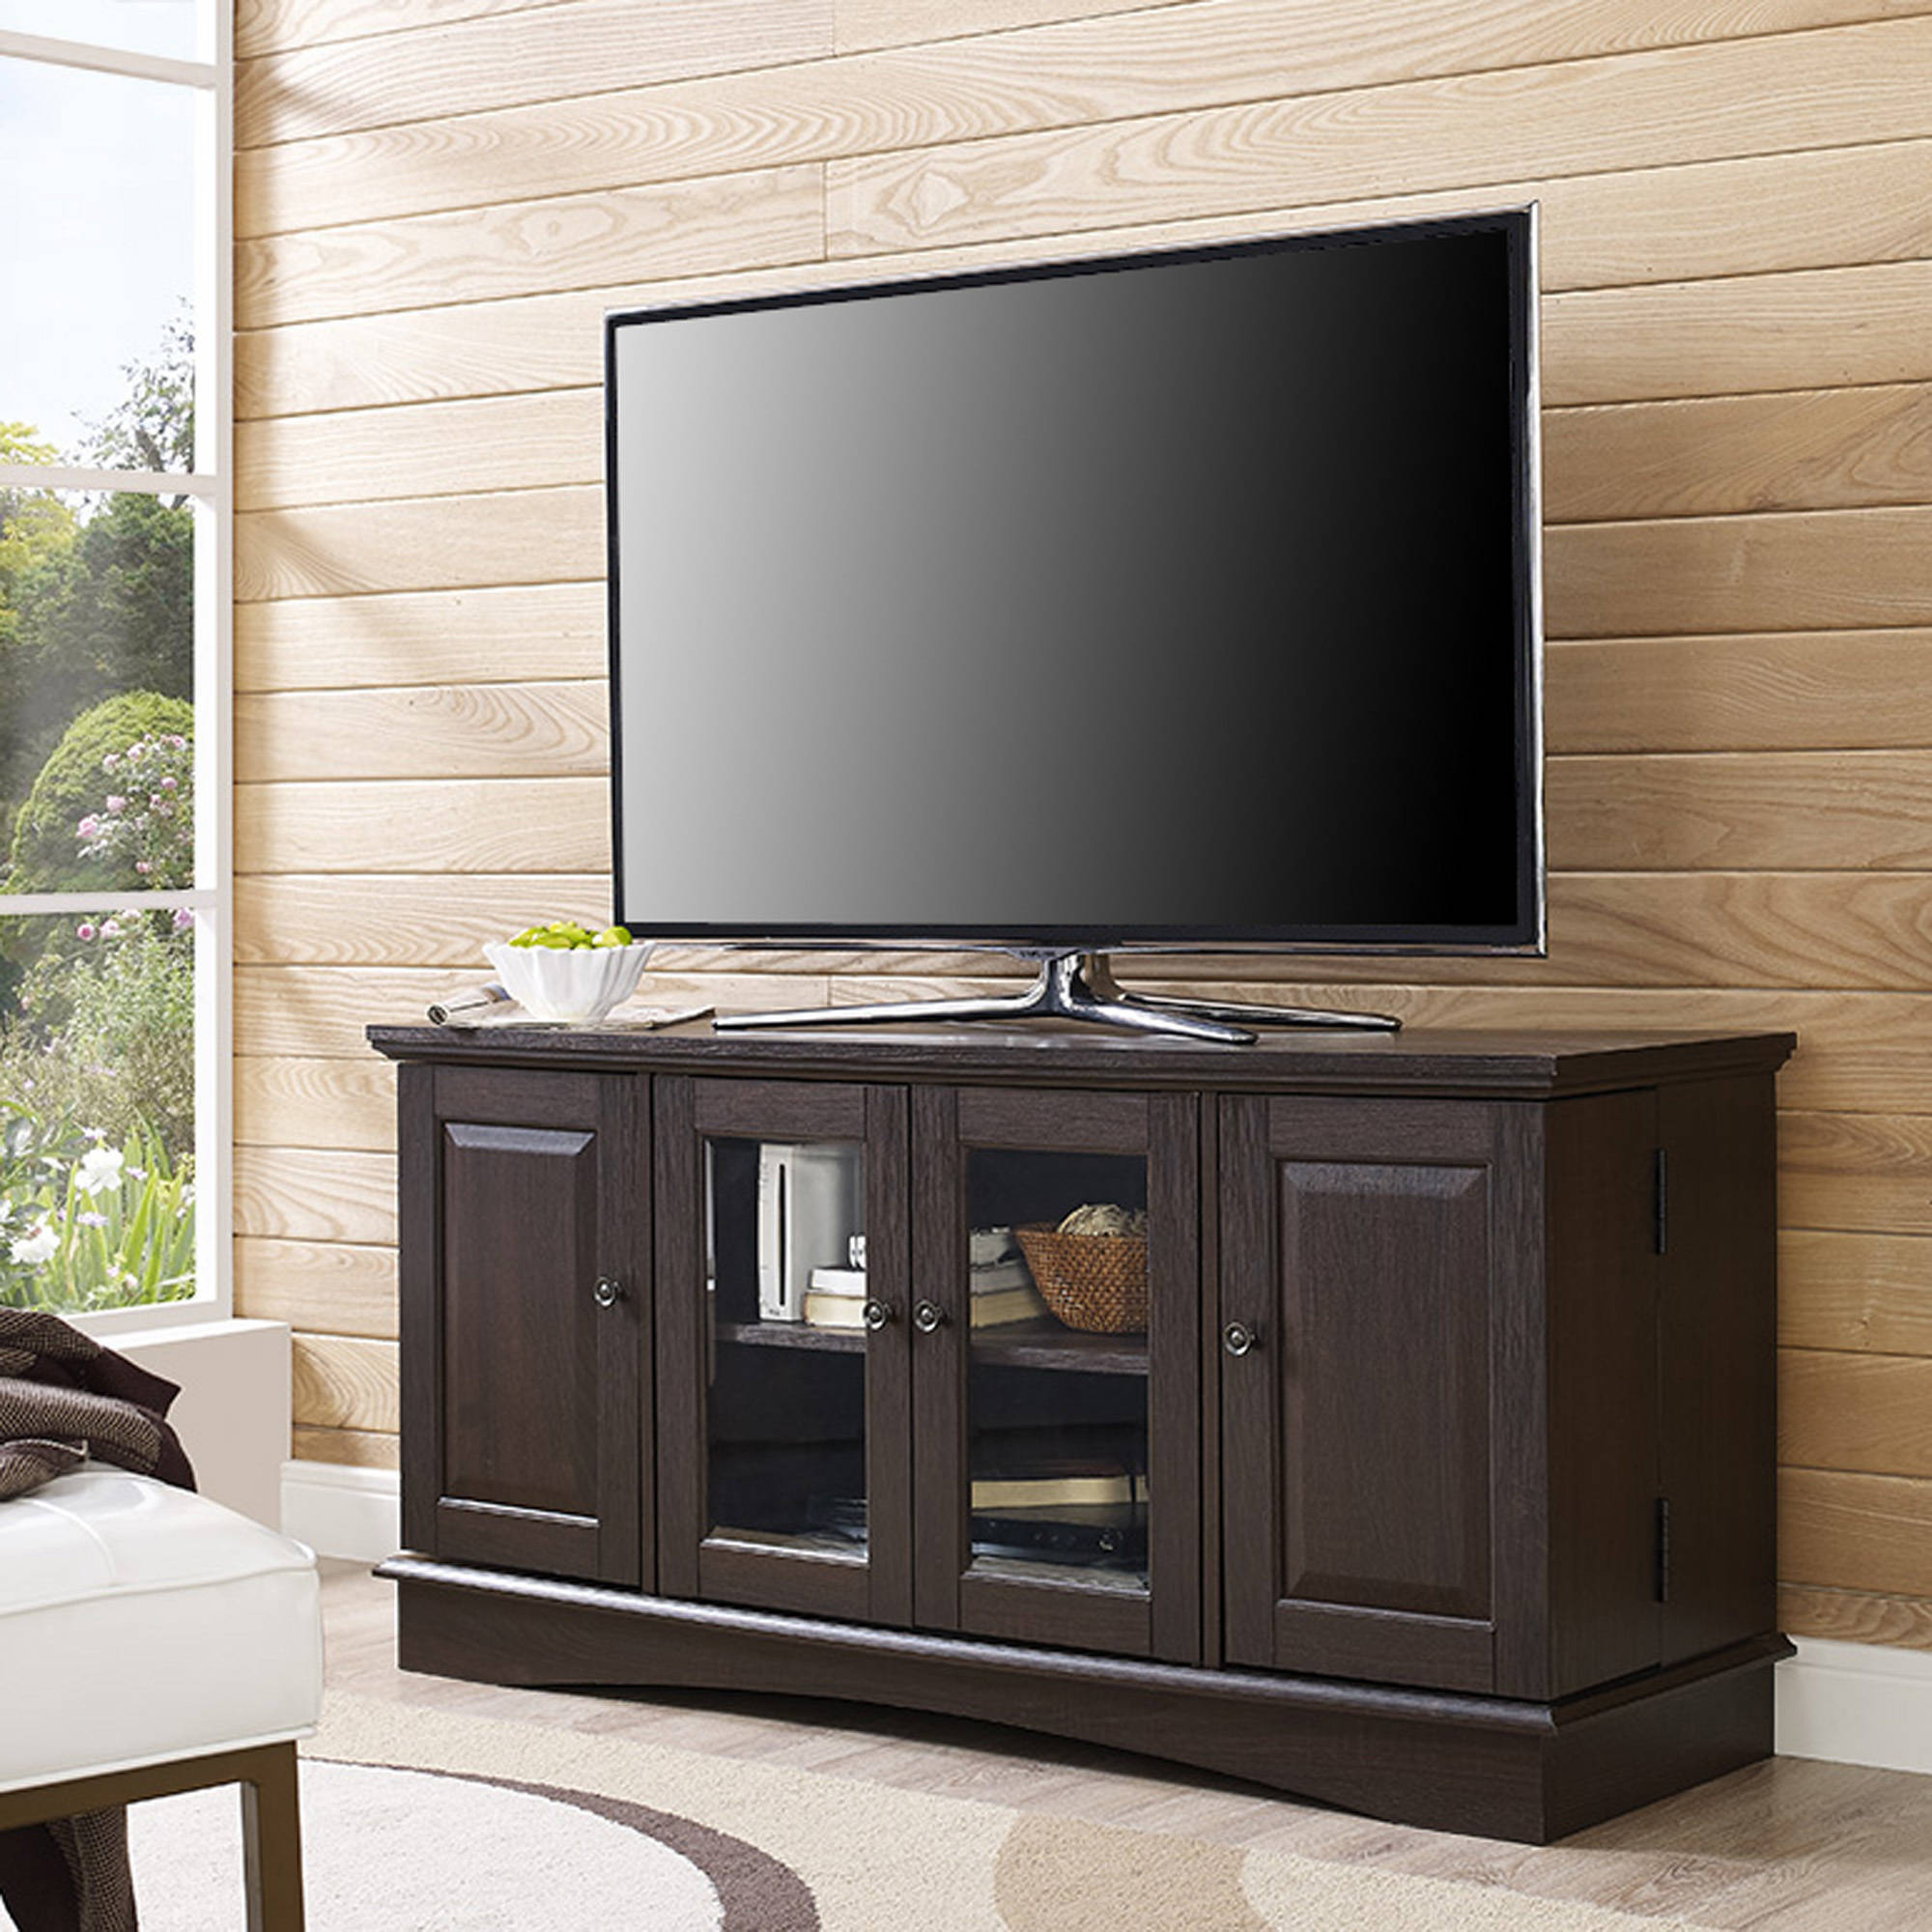 "52"" Brown Wood TV Stand Media Console for TV's up to 55"" by Generic"